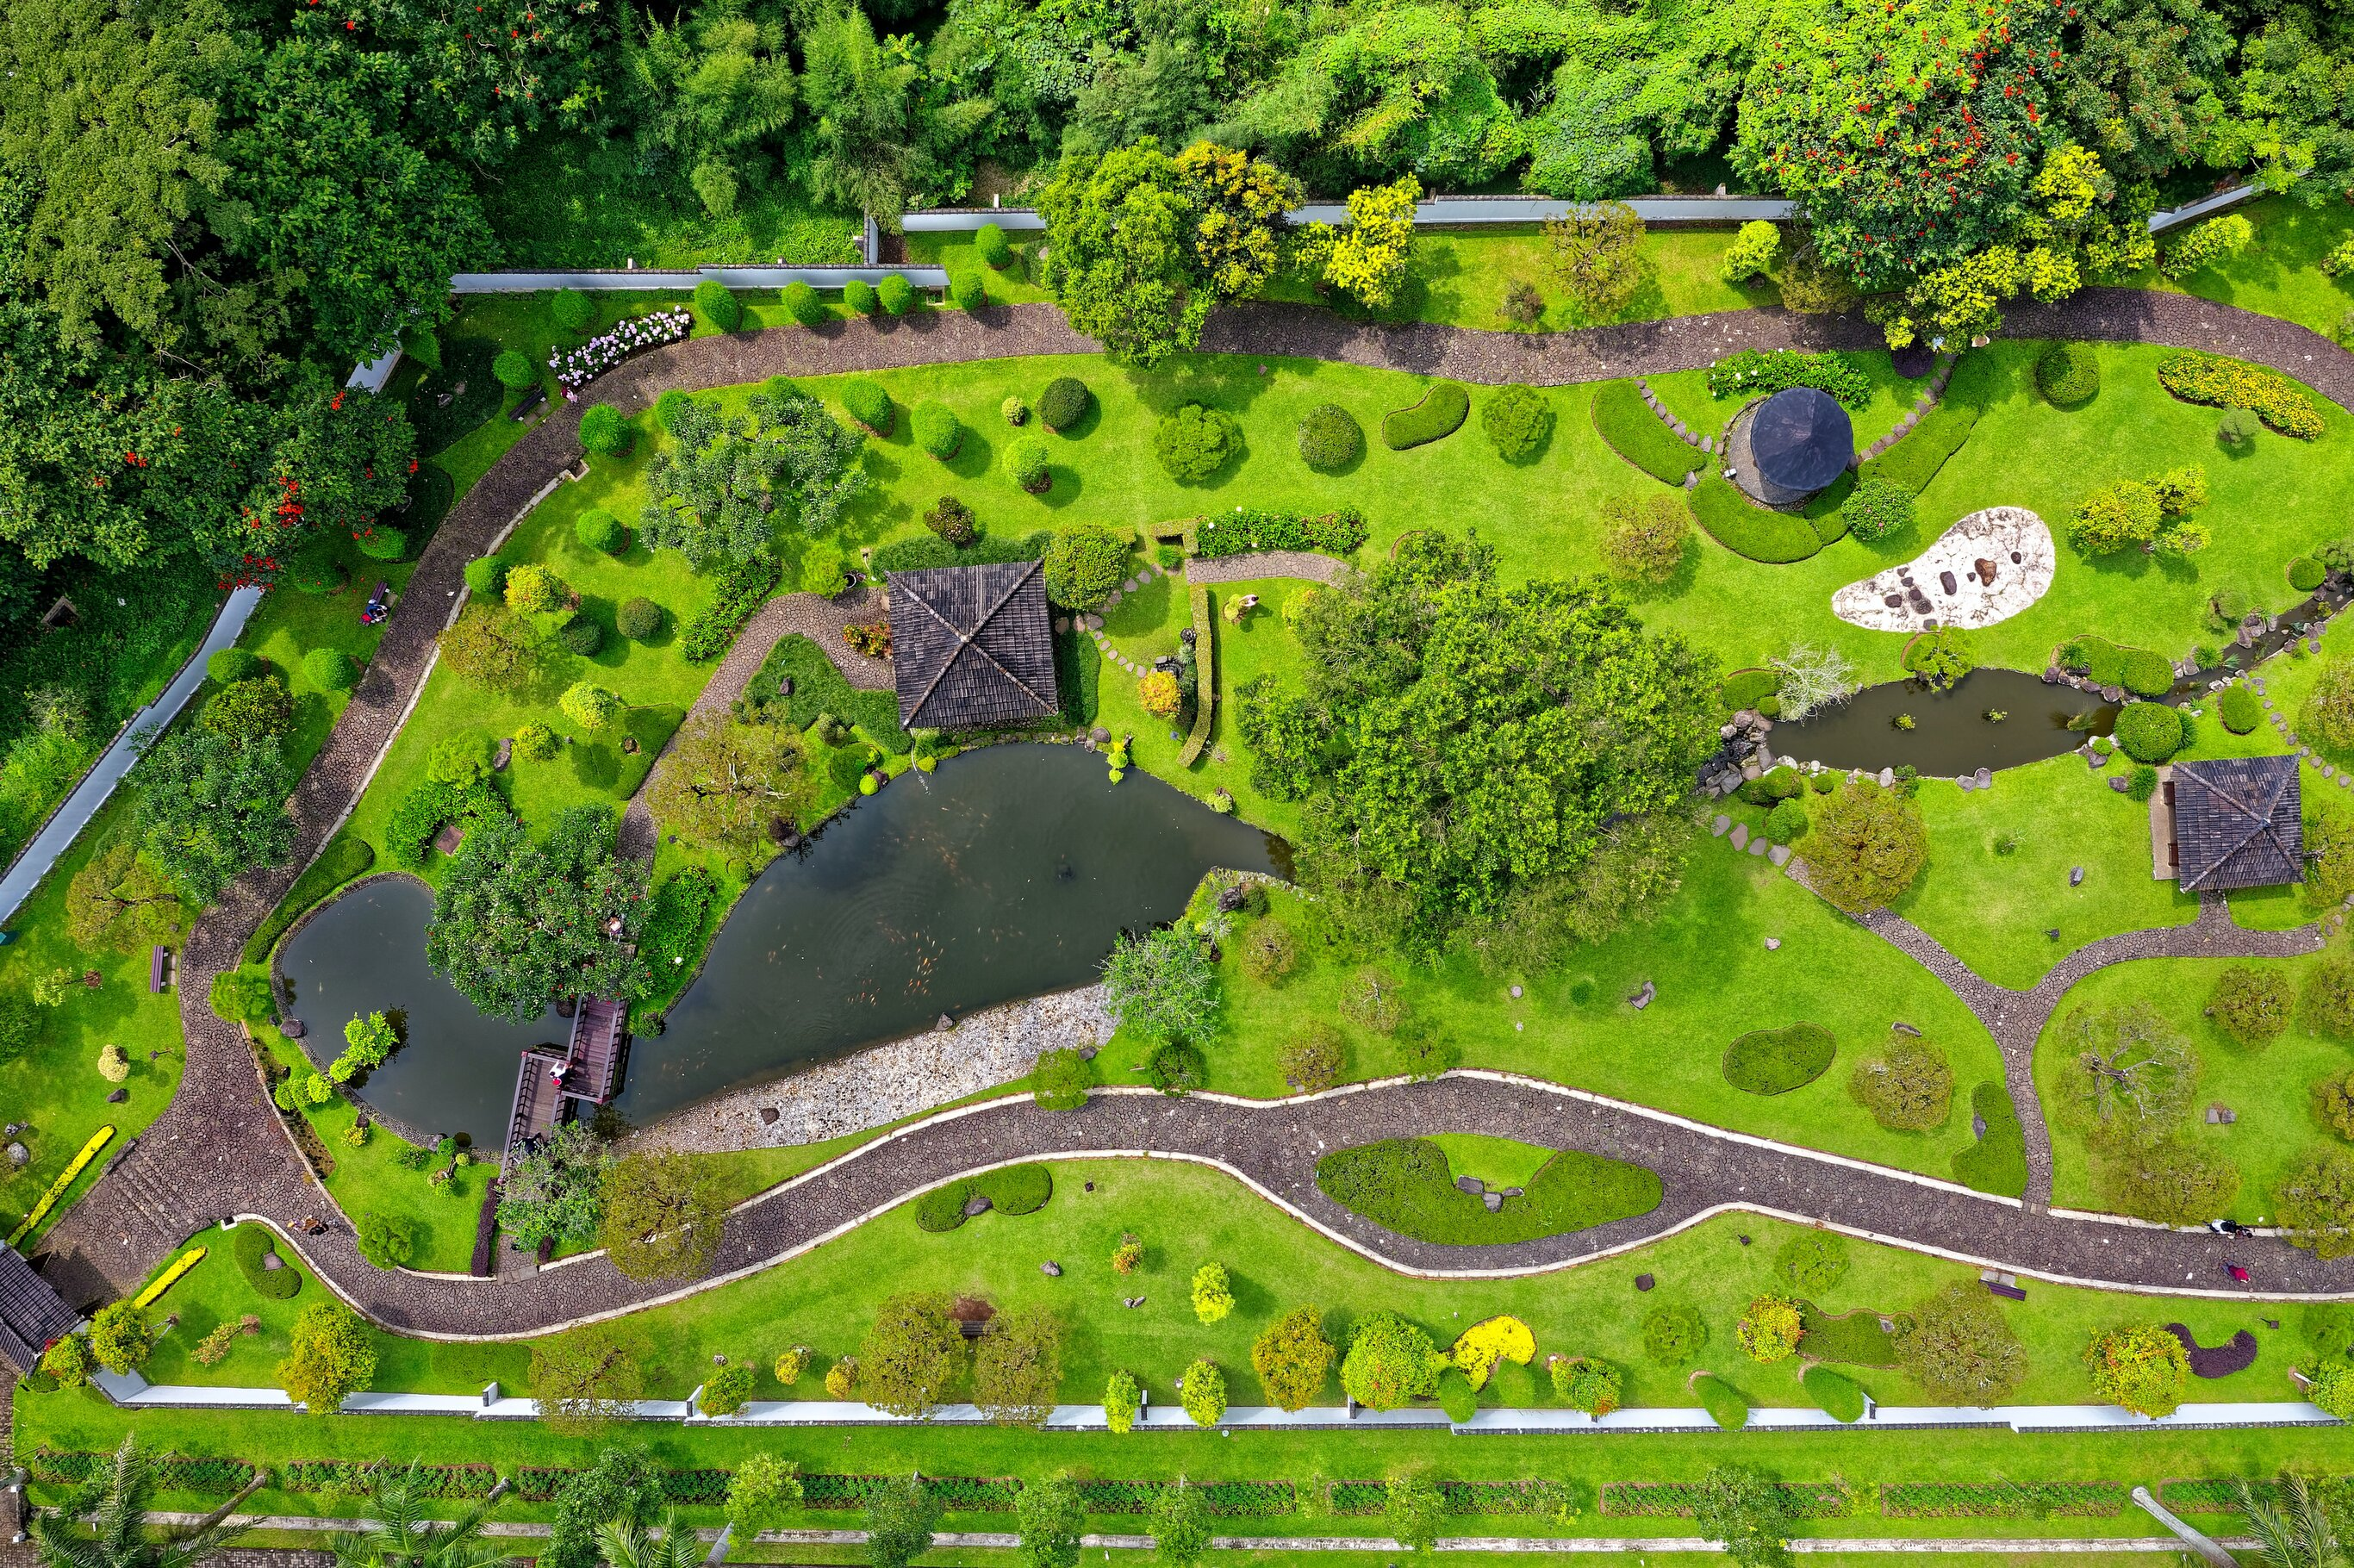 4 Considerations You Must Make for the Perfect Landscape Design